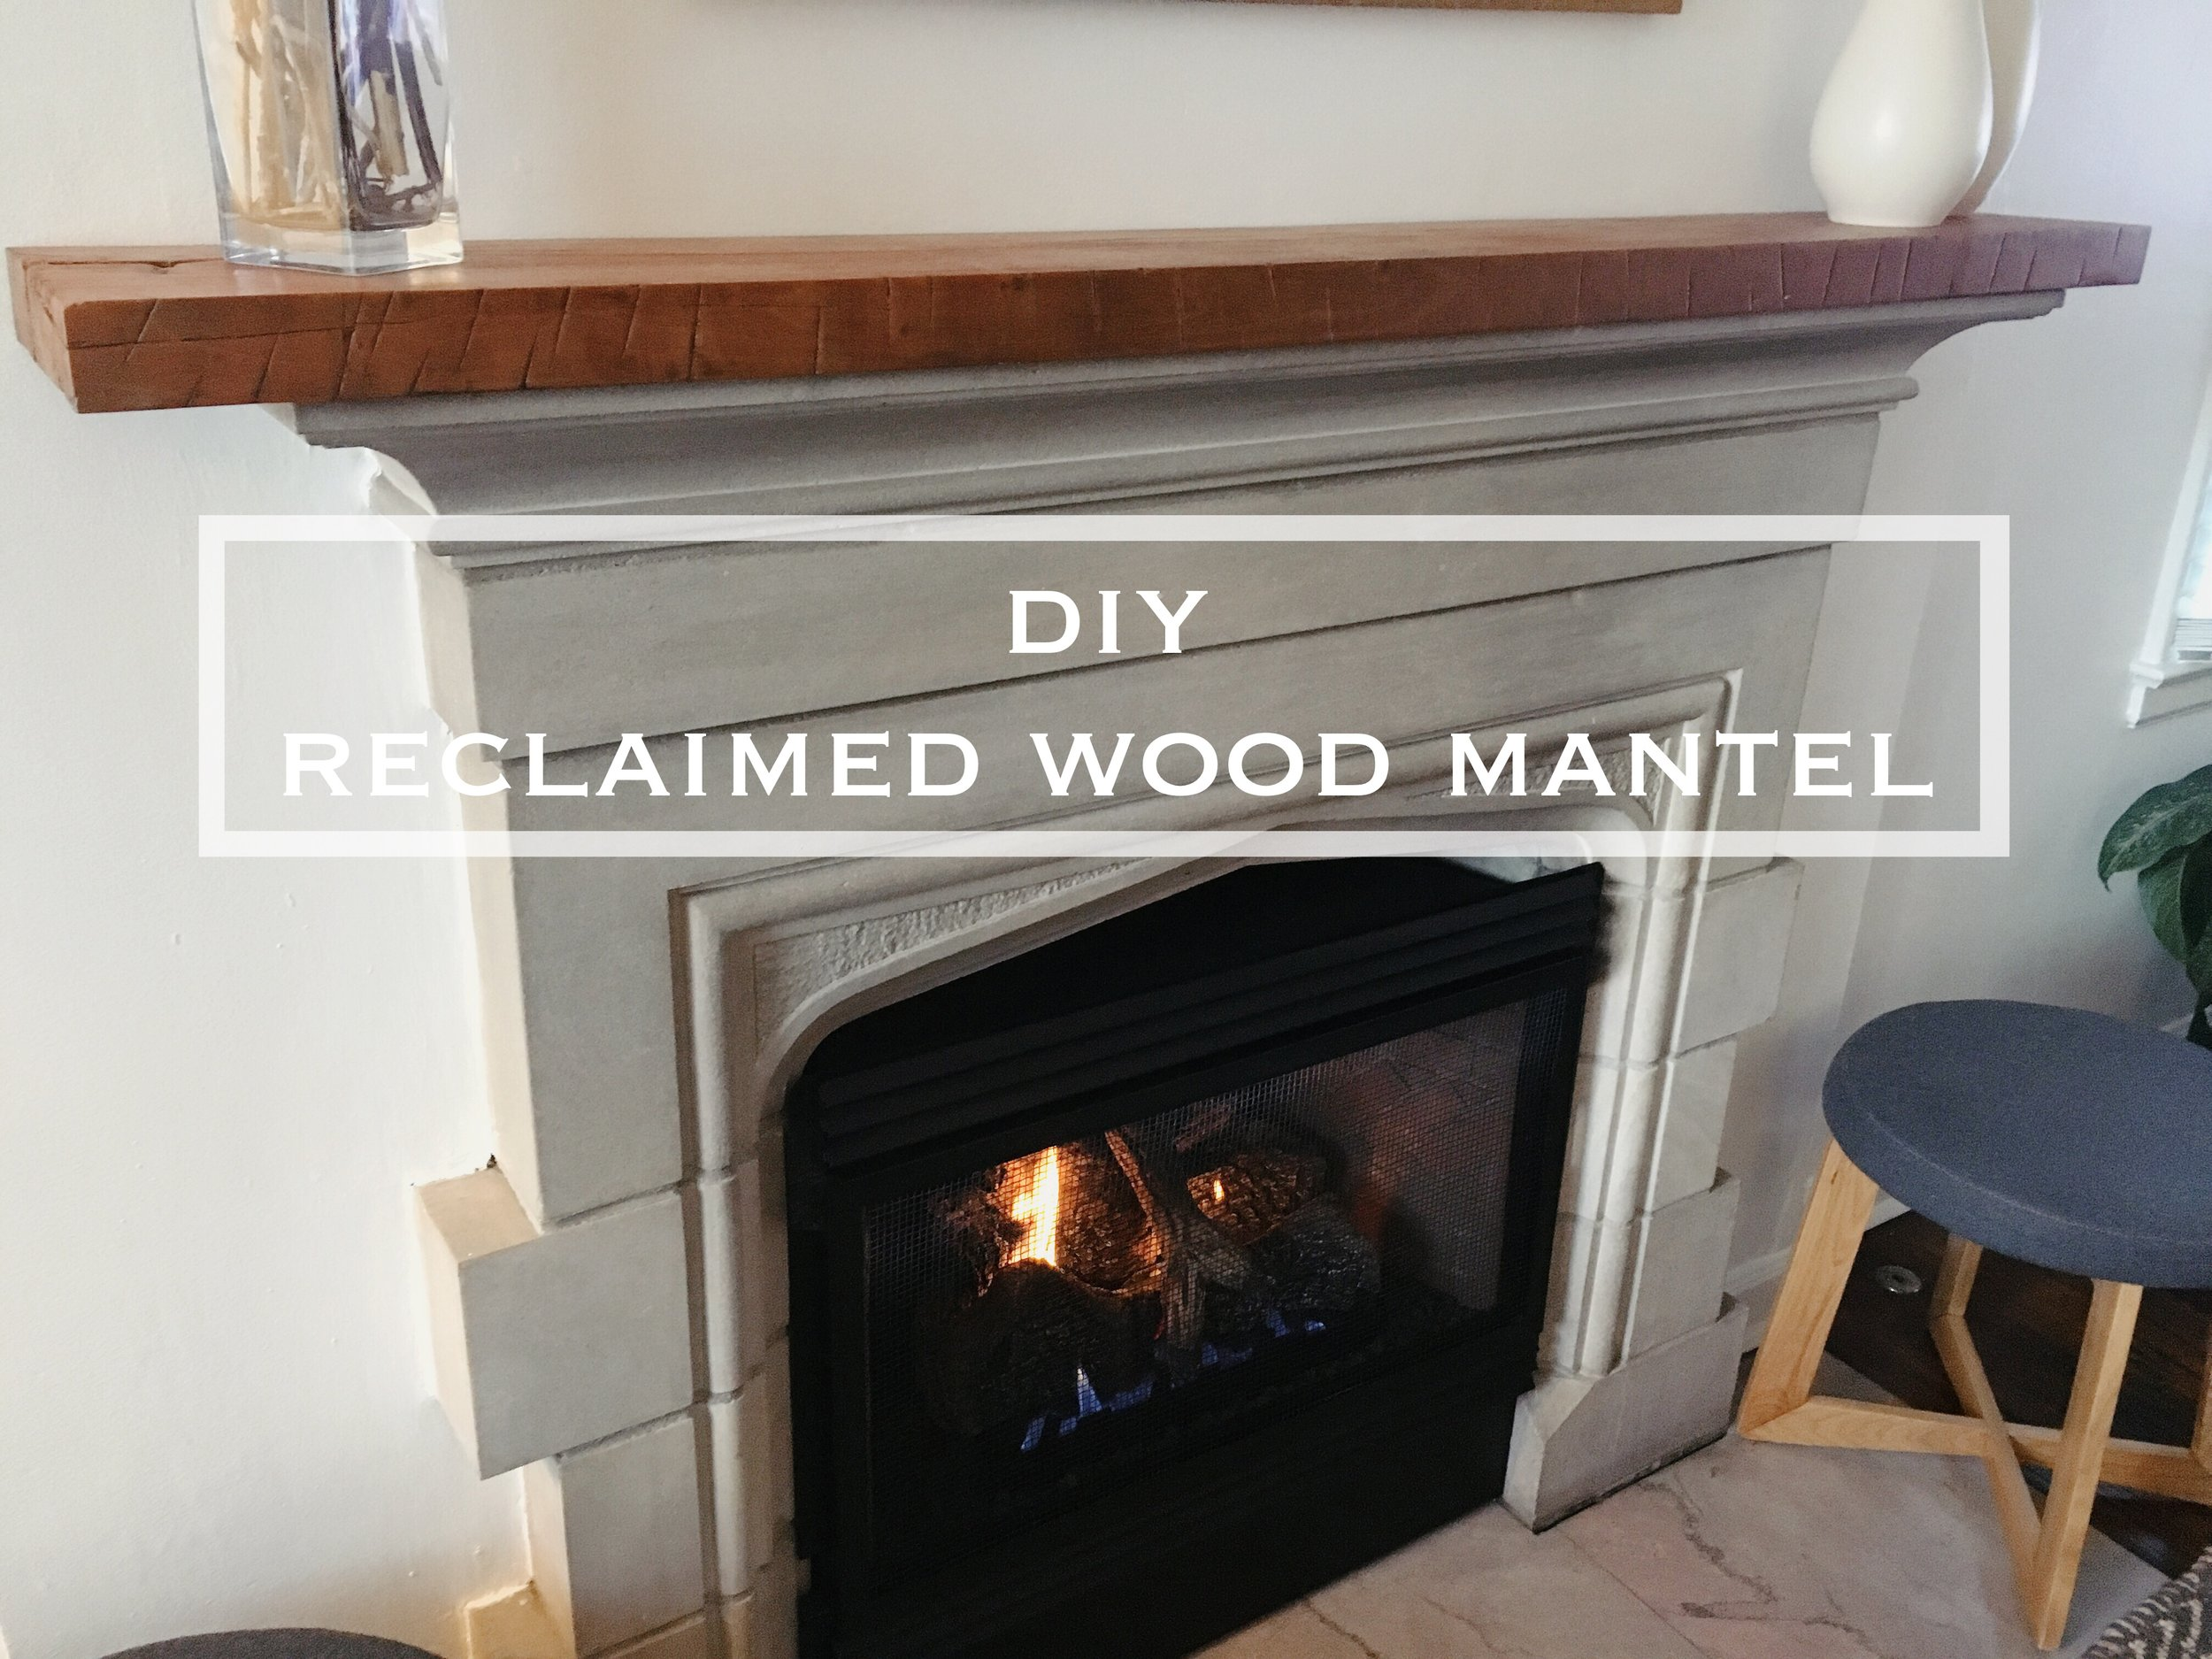 DIY_ReclaimedWoodMantel